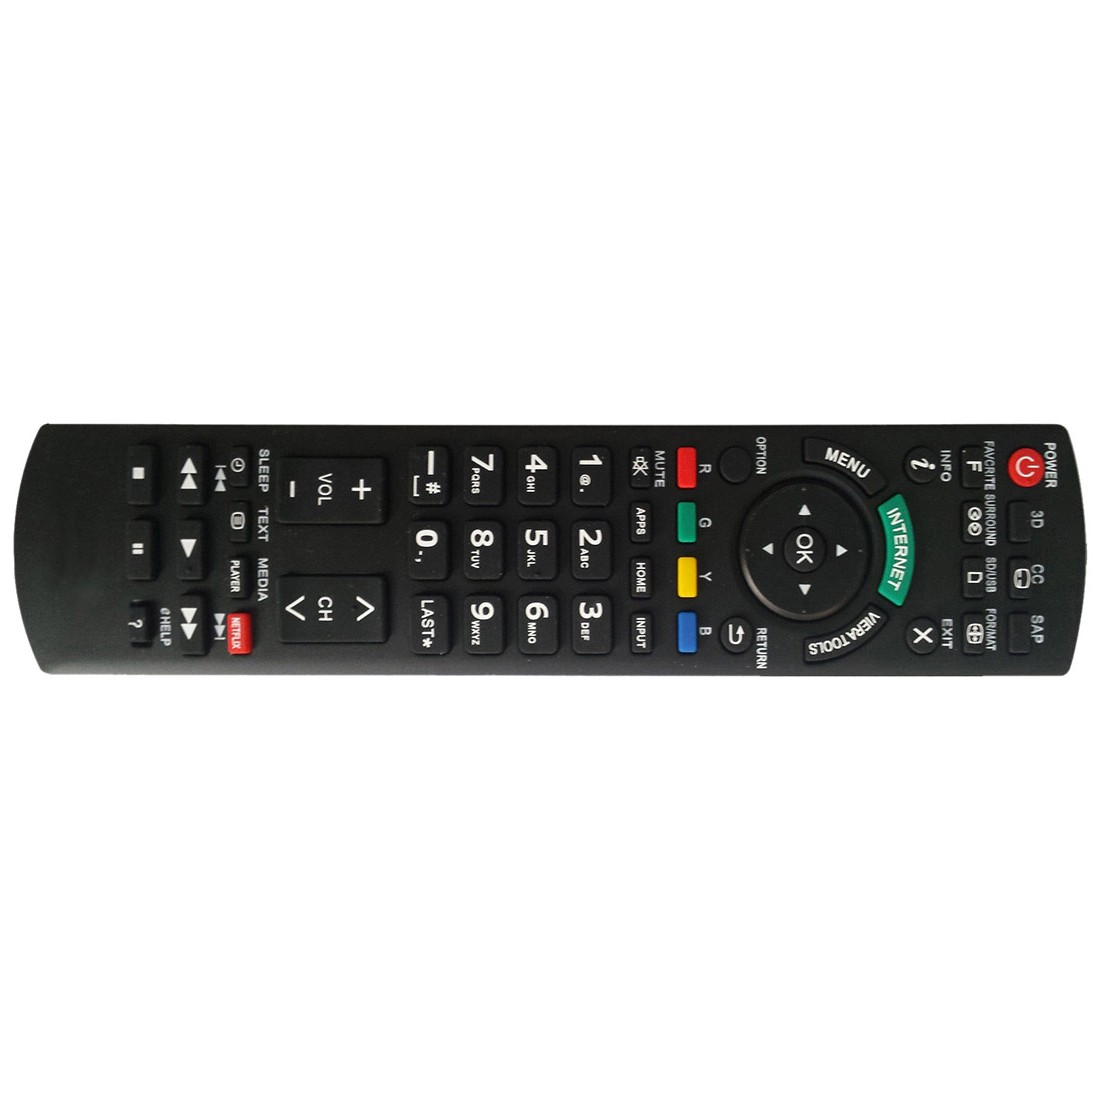 NEW TV Remote PAN-918 For Panasonic N2QAYB000485 N2QAYB000100 N2QAYB000221